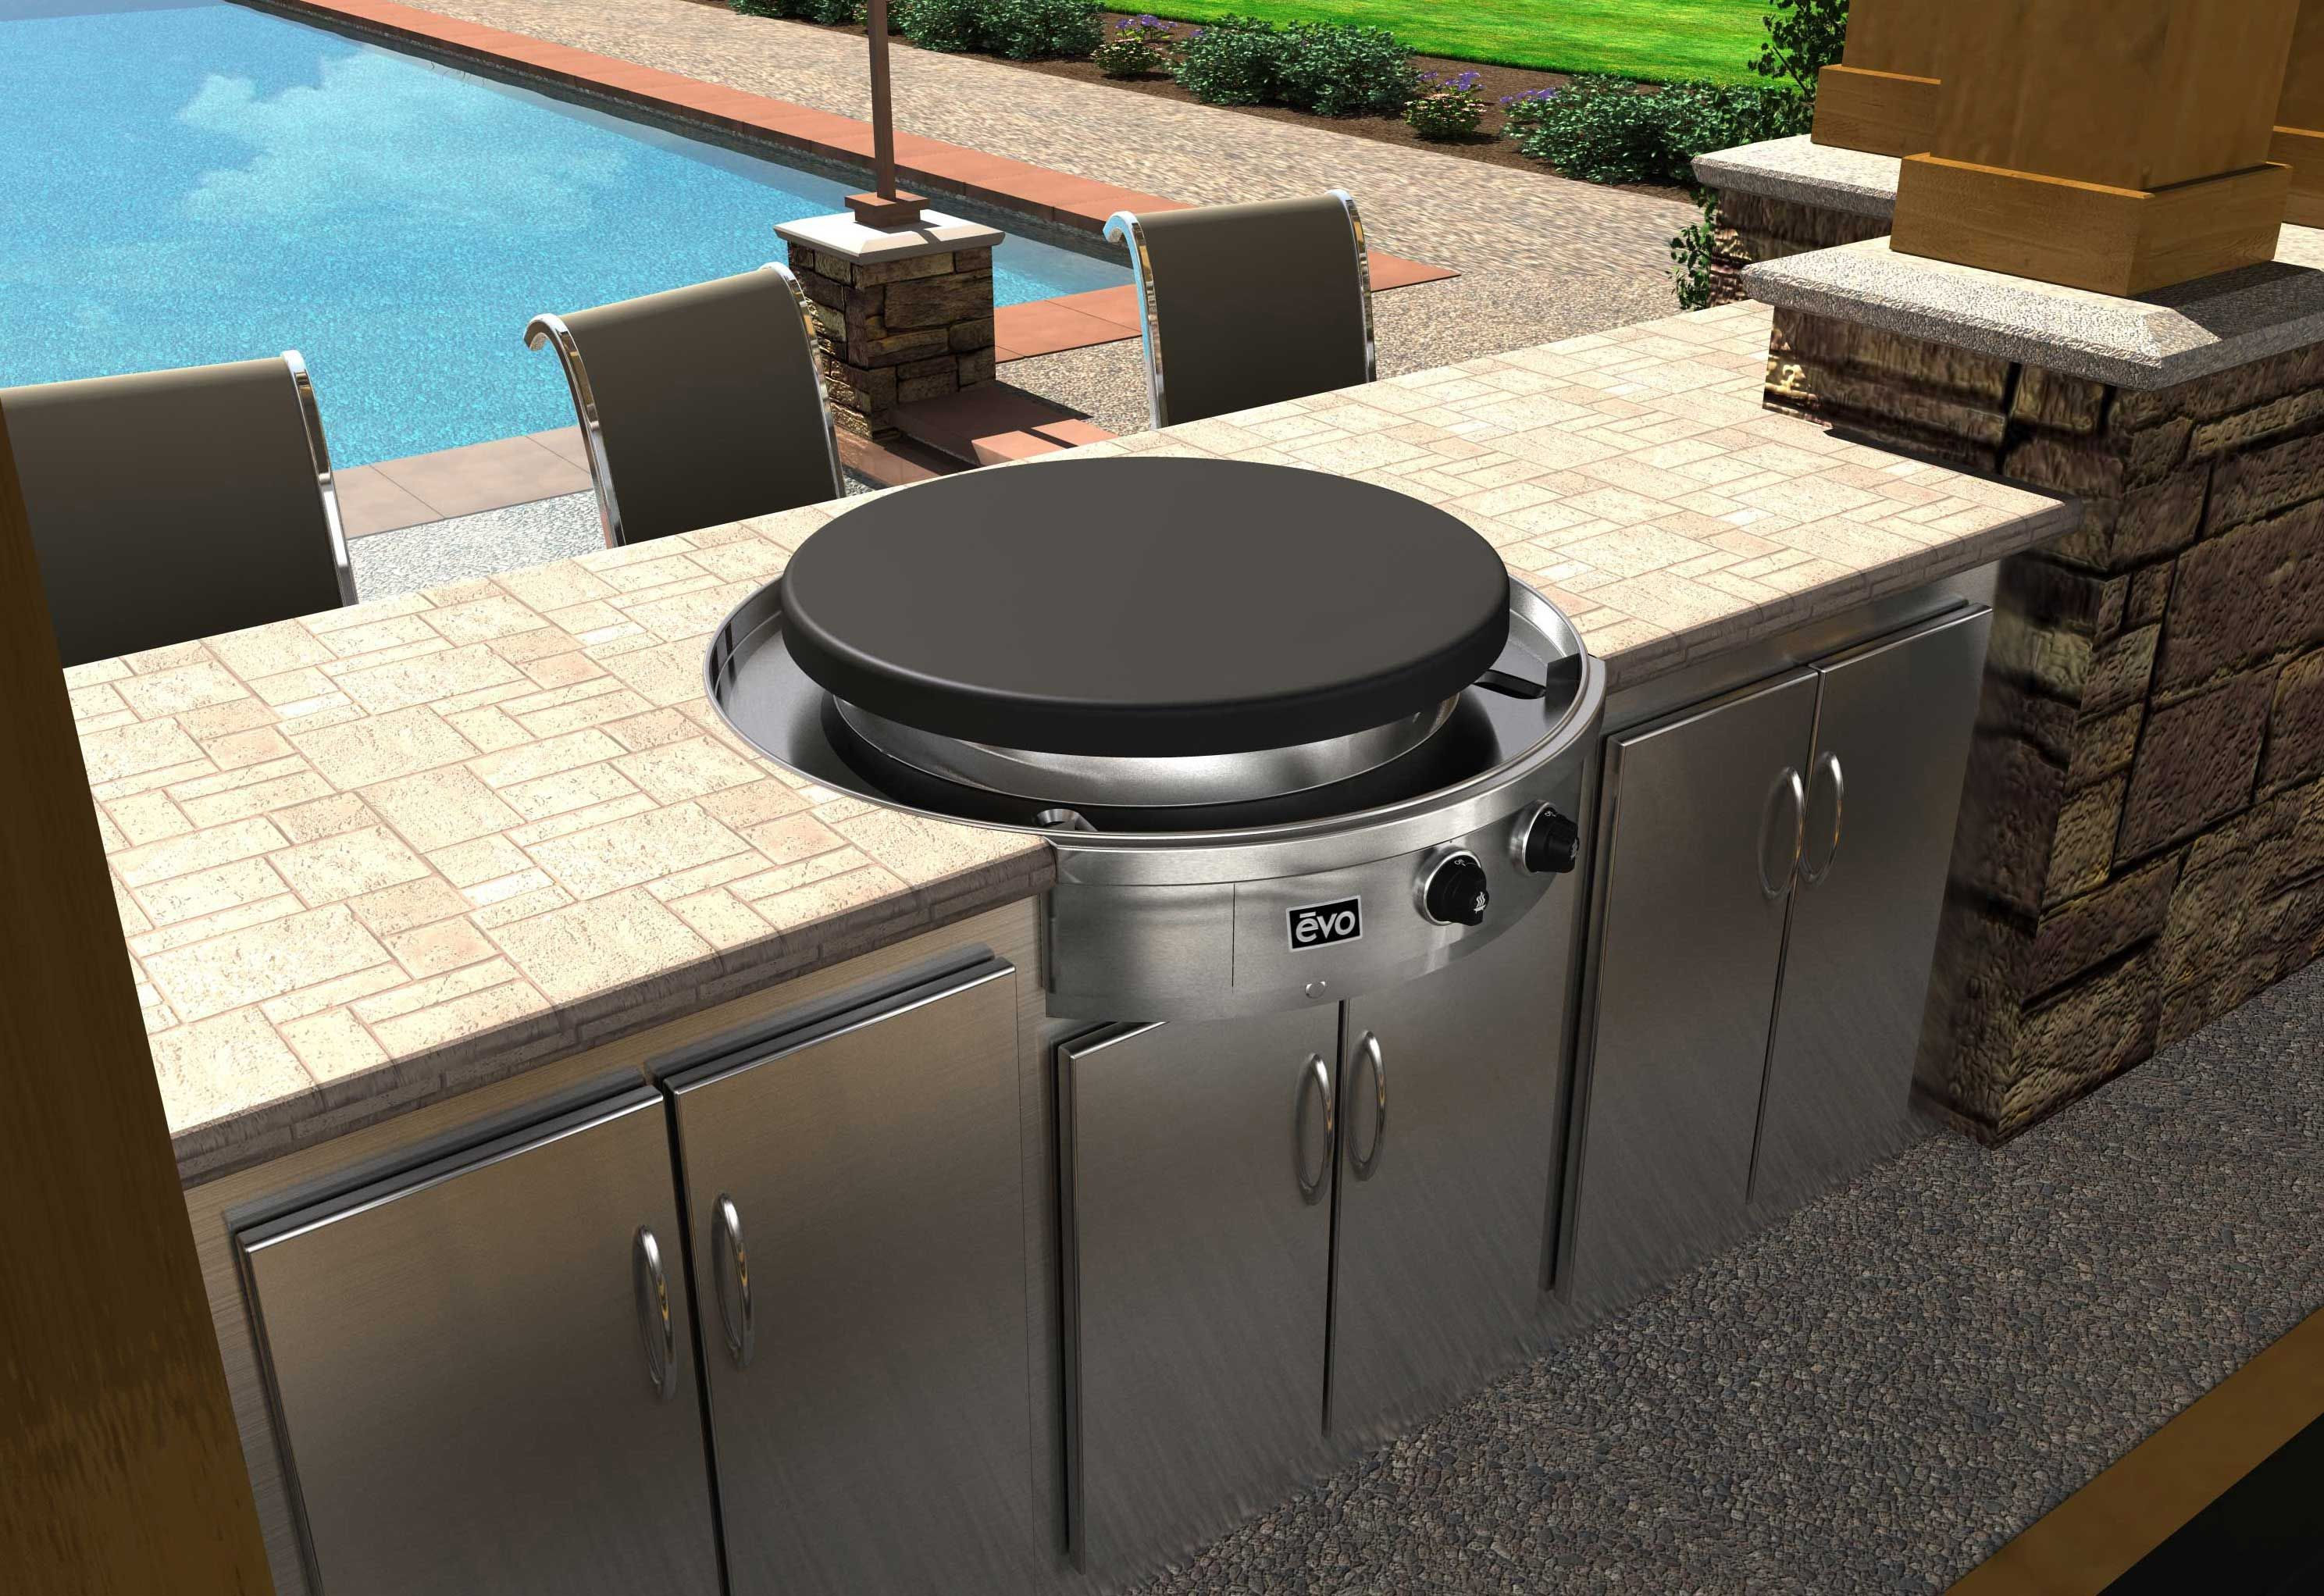 Evo Grill Flat Top Grill Outdoor Kitchen Countertops Built In